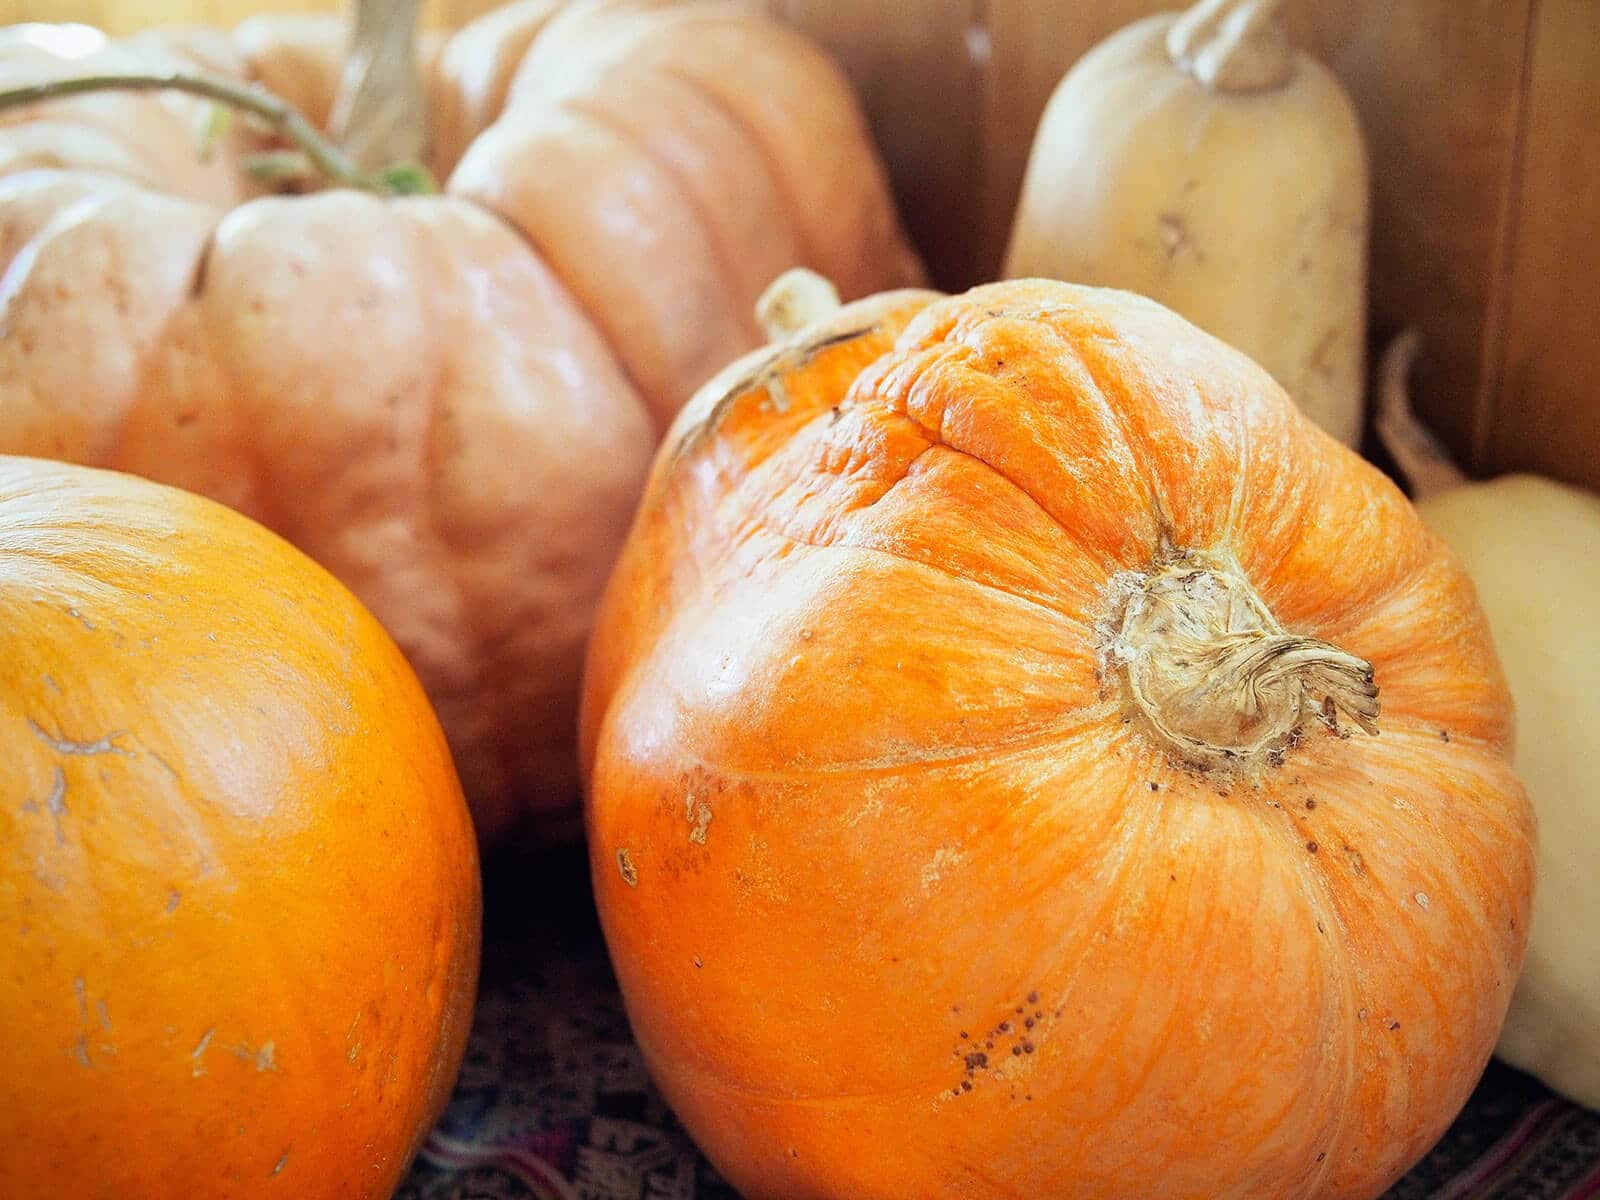 Close-up of various orange and yellow winter squash in storage